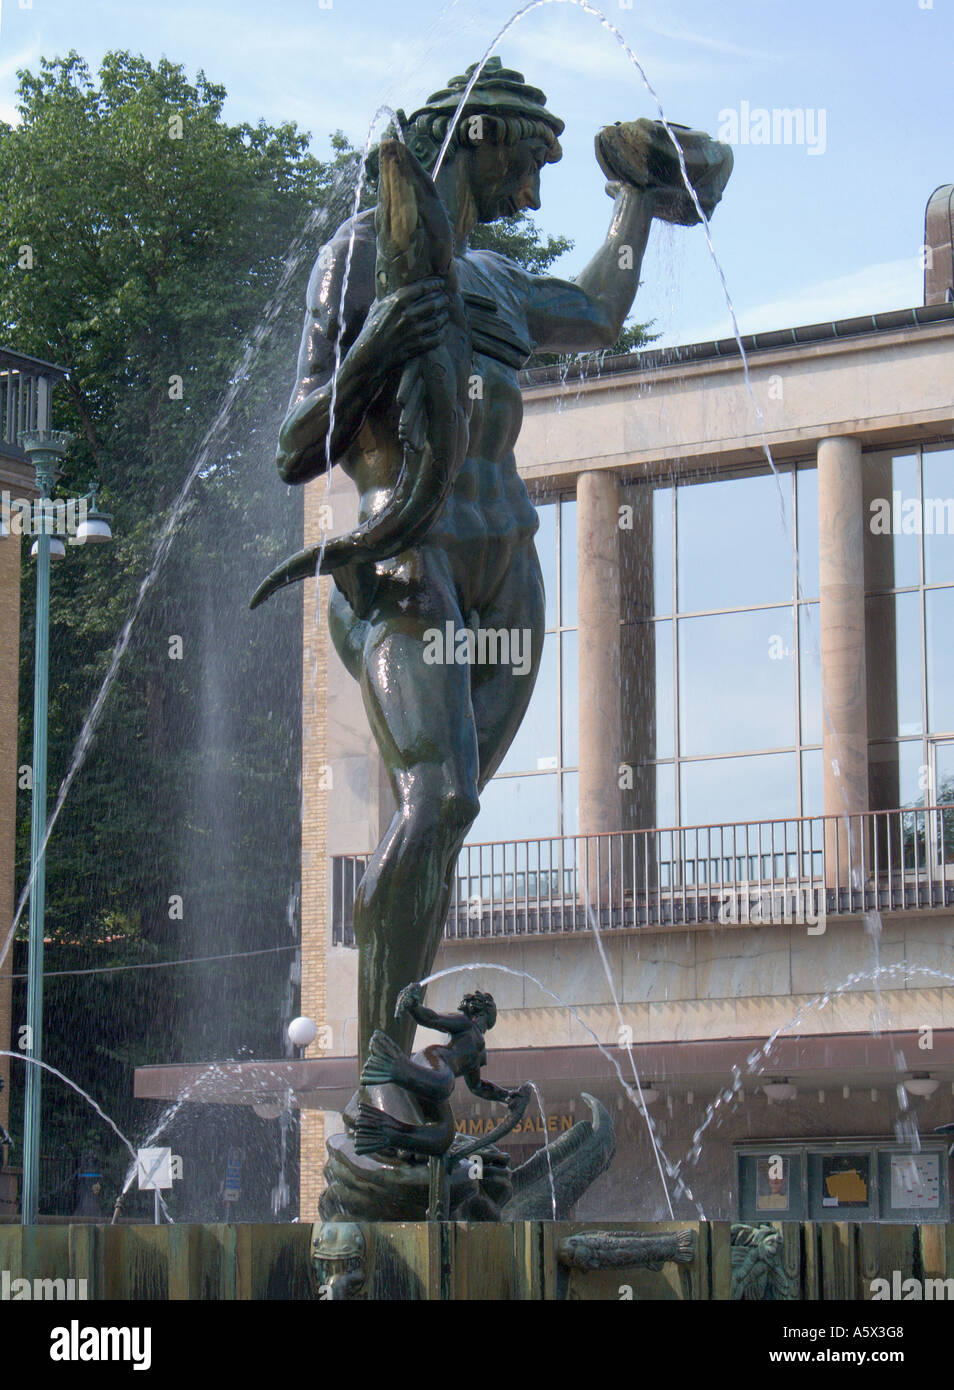 Statue of Poseidon Gotaplatsen Gothenburg Sweden - Stock Image